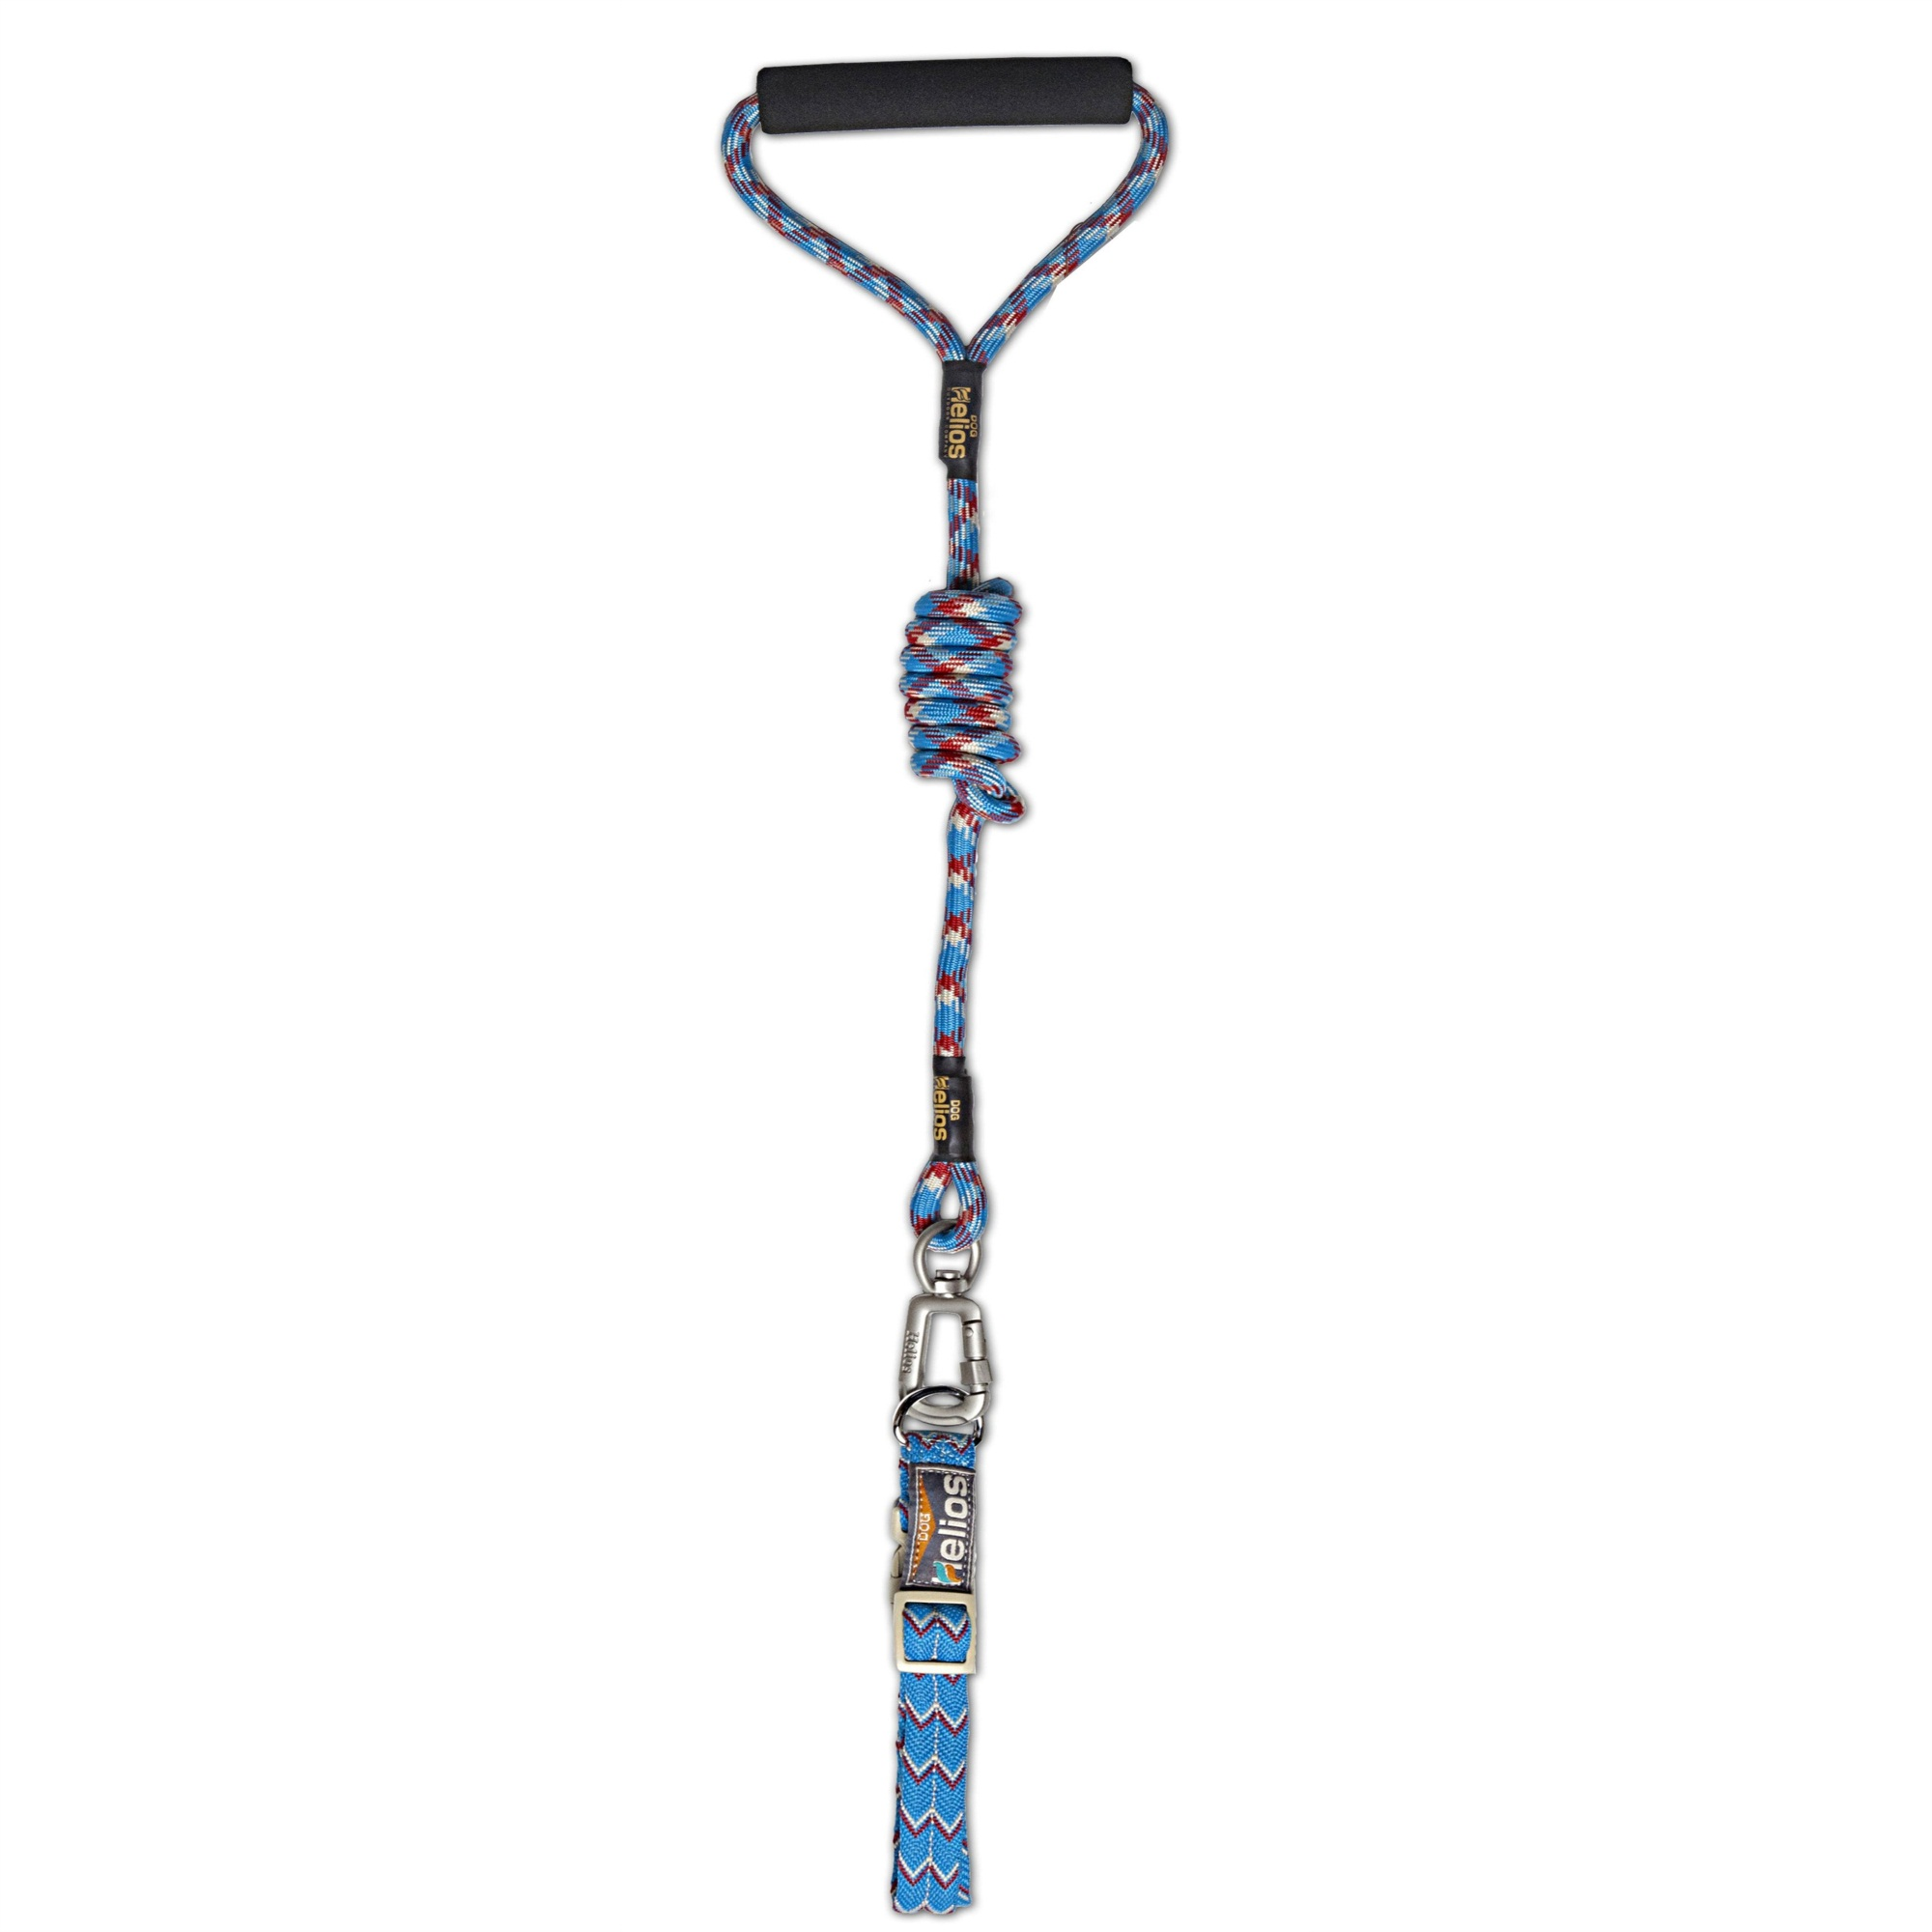 Helios Dura Tough Easy Tension 3m Reflective Pet Leash And